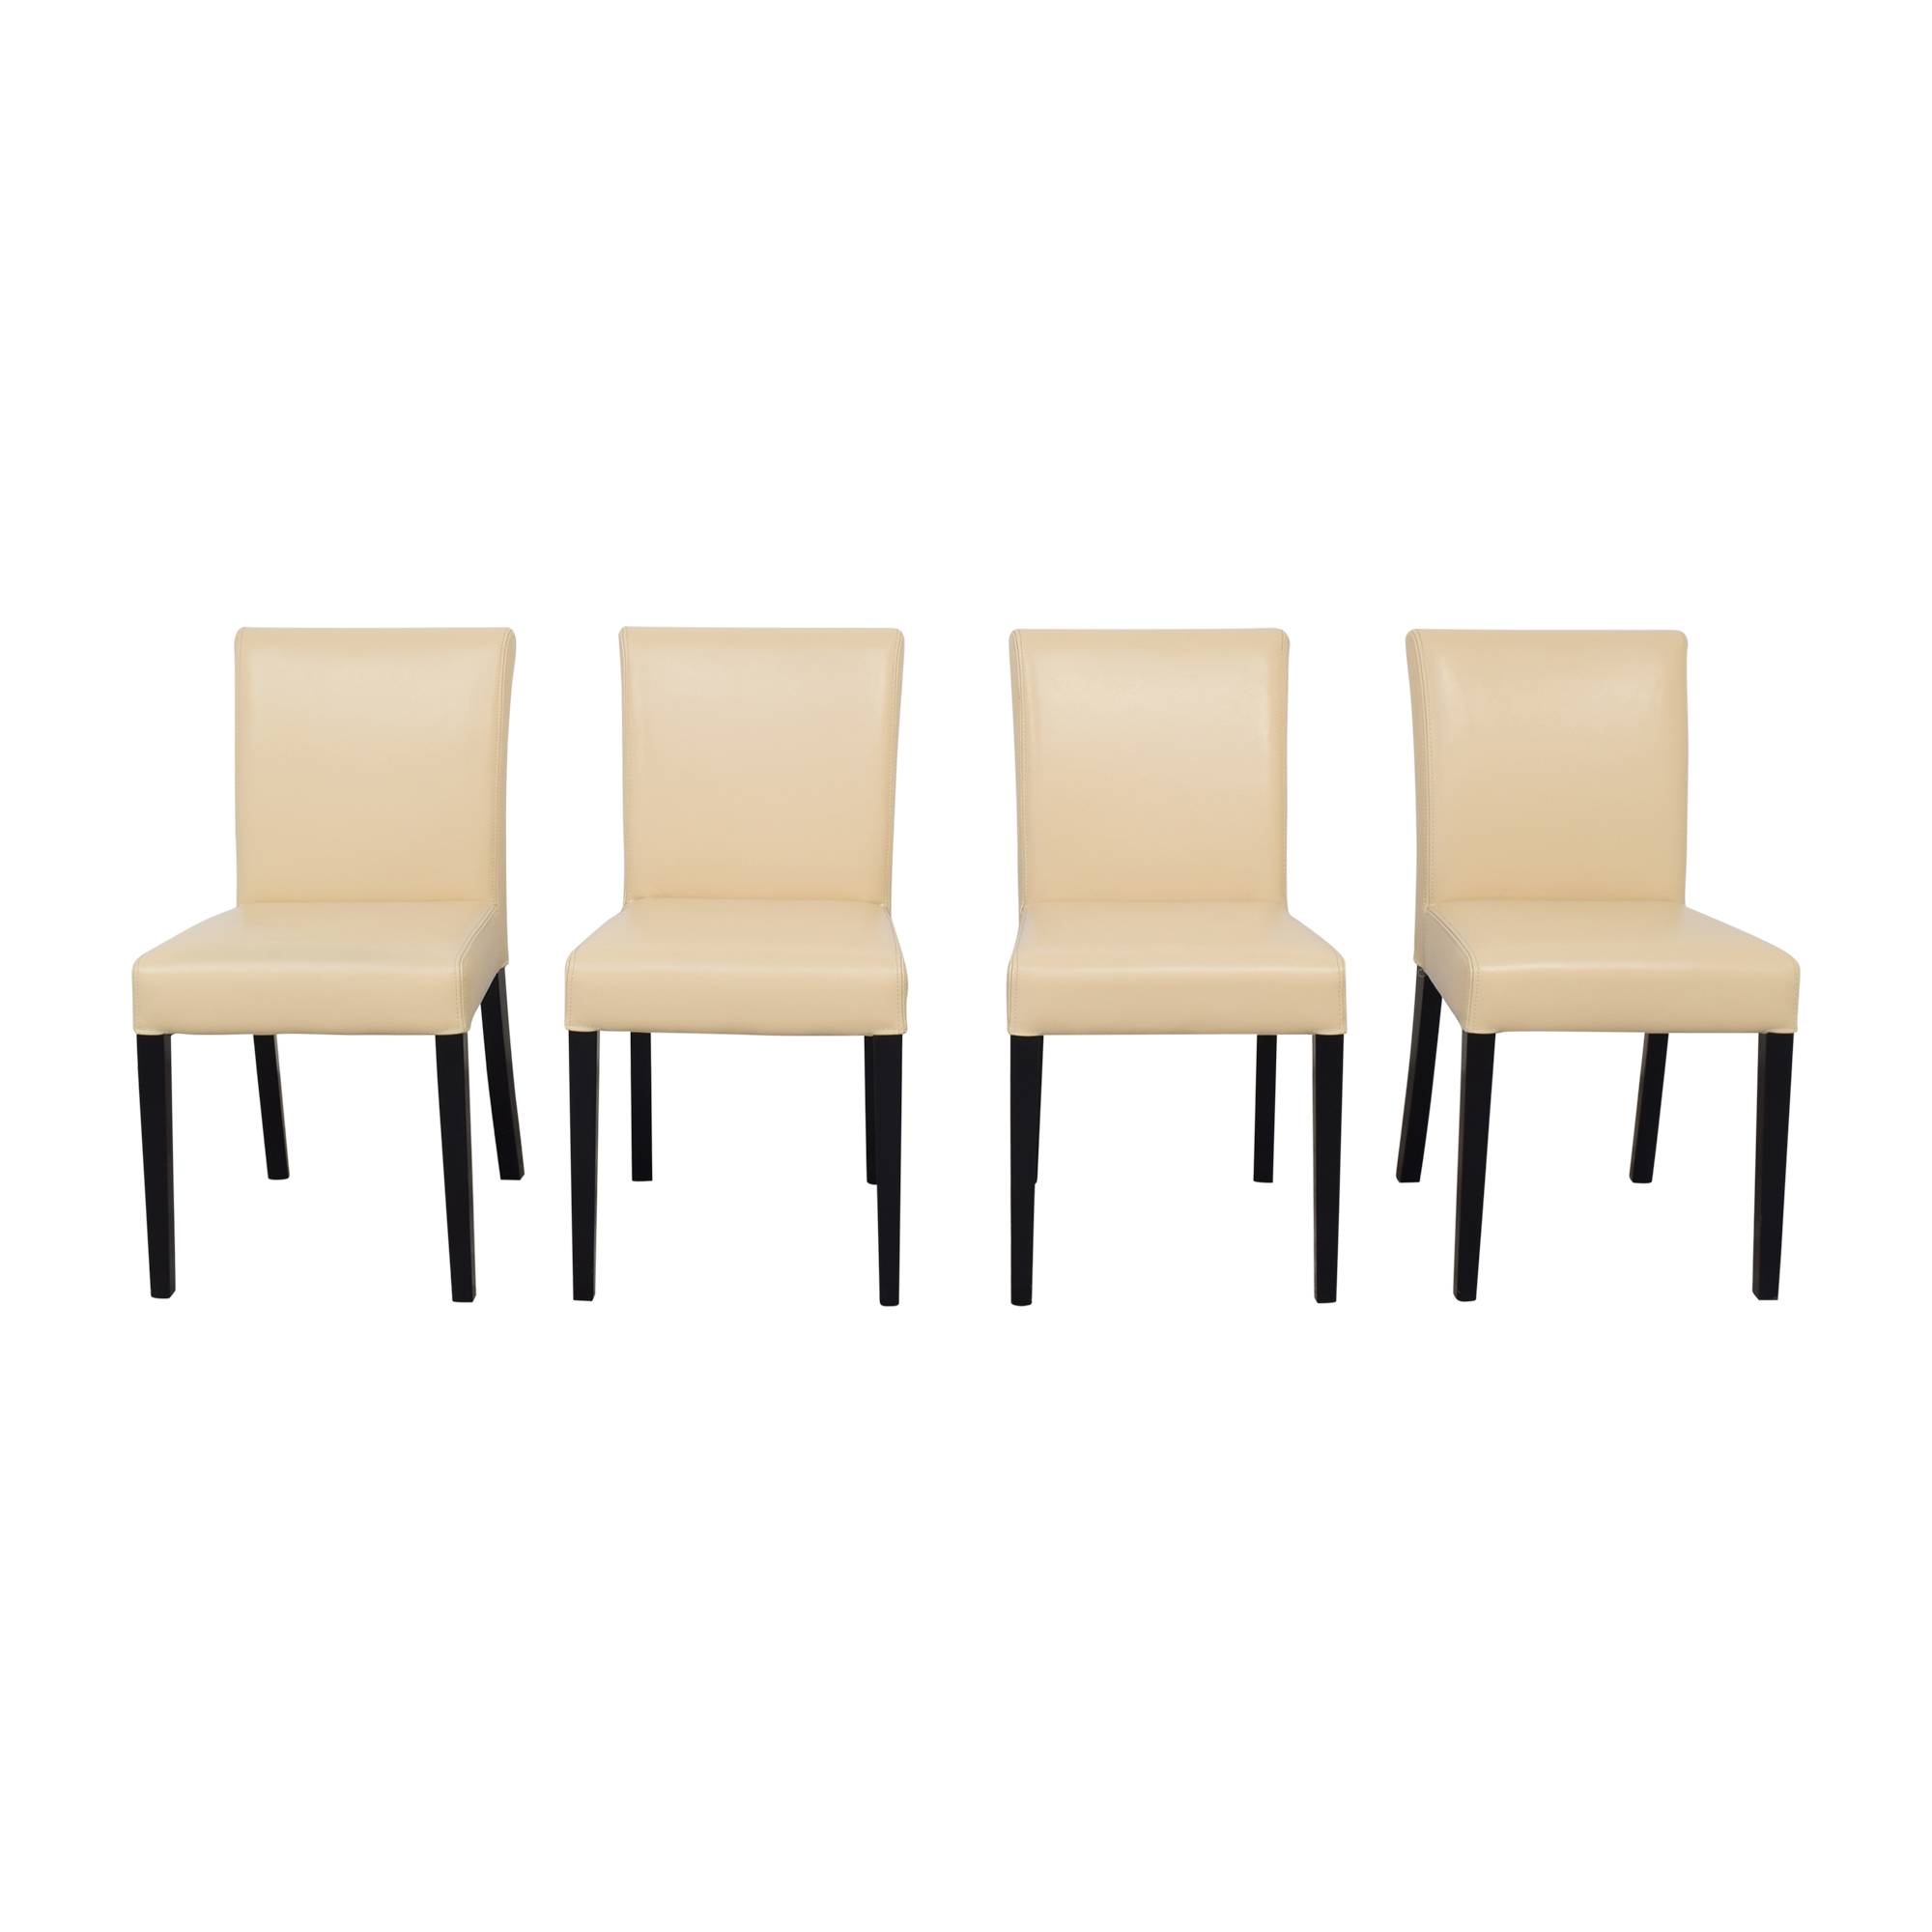 Crate & Barrel Lowe Ivory Dining Chairs / Dining Chairs